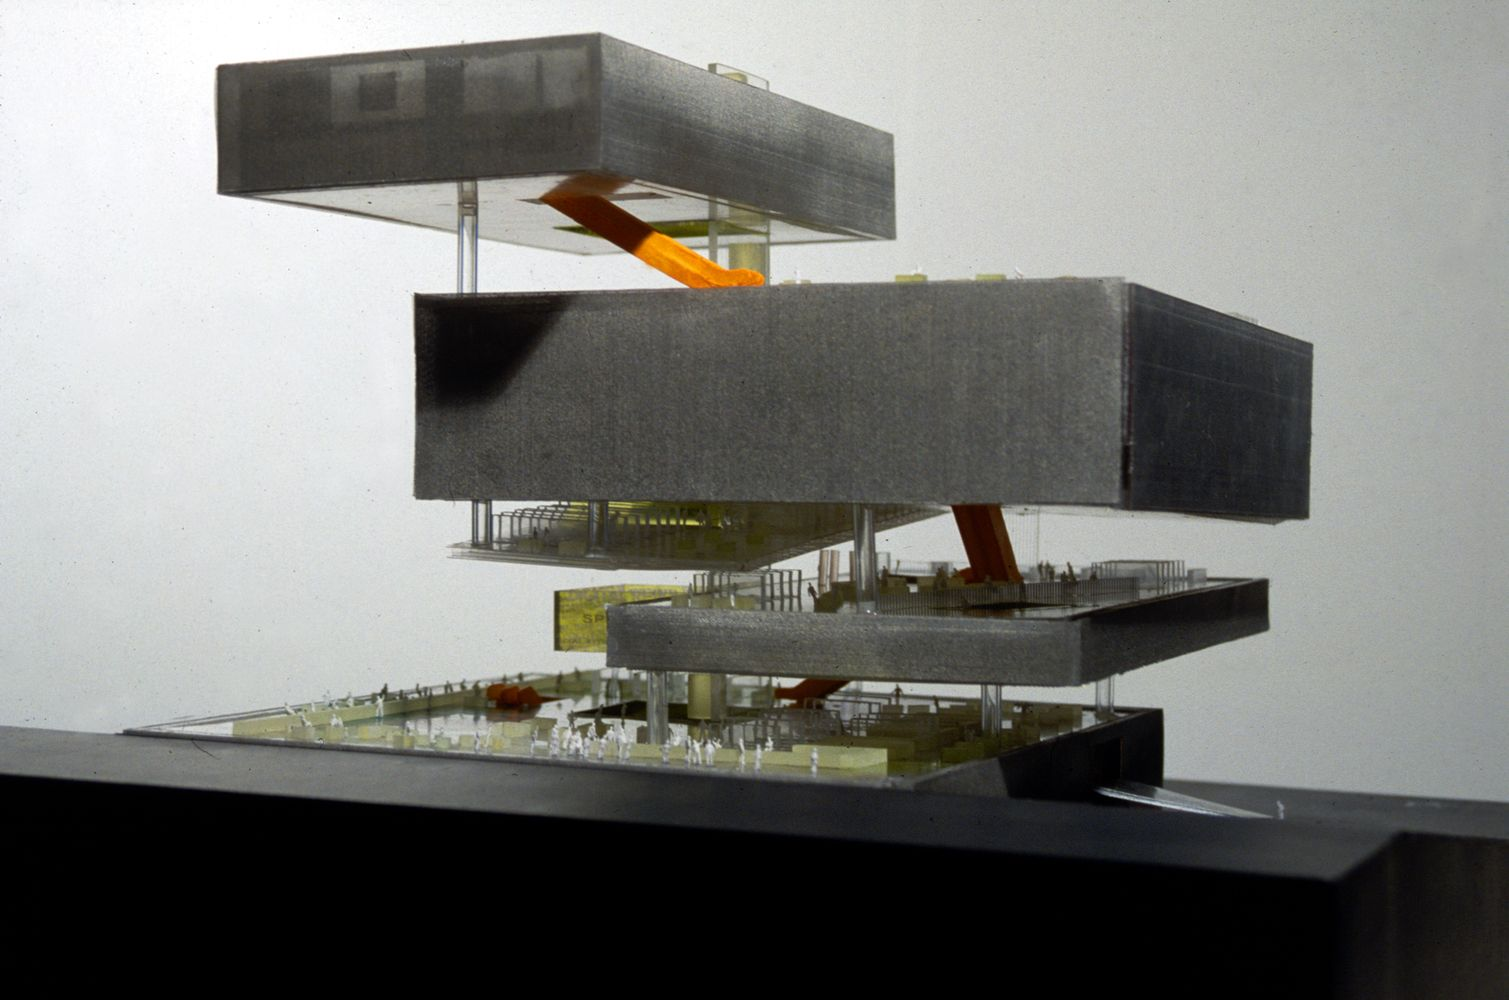 Gallery of Seattle Central Library / OMA + LMN - 52